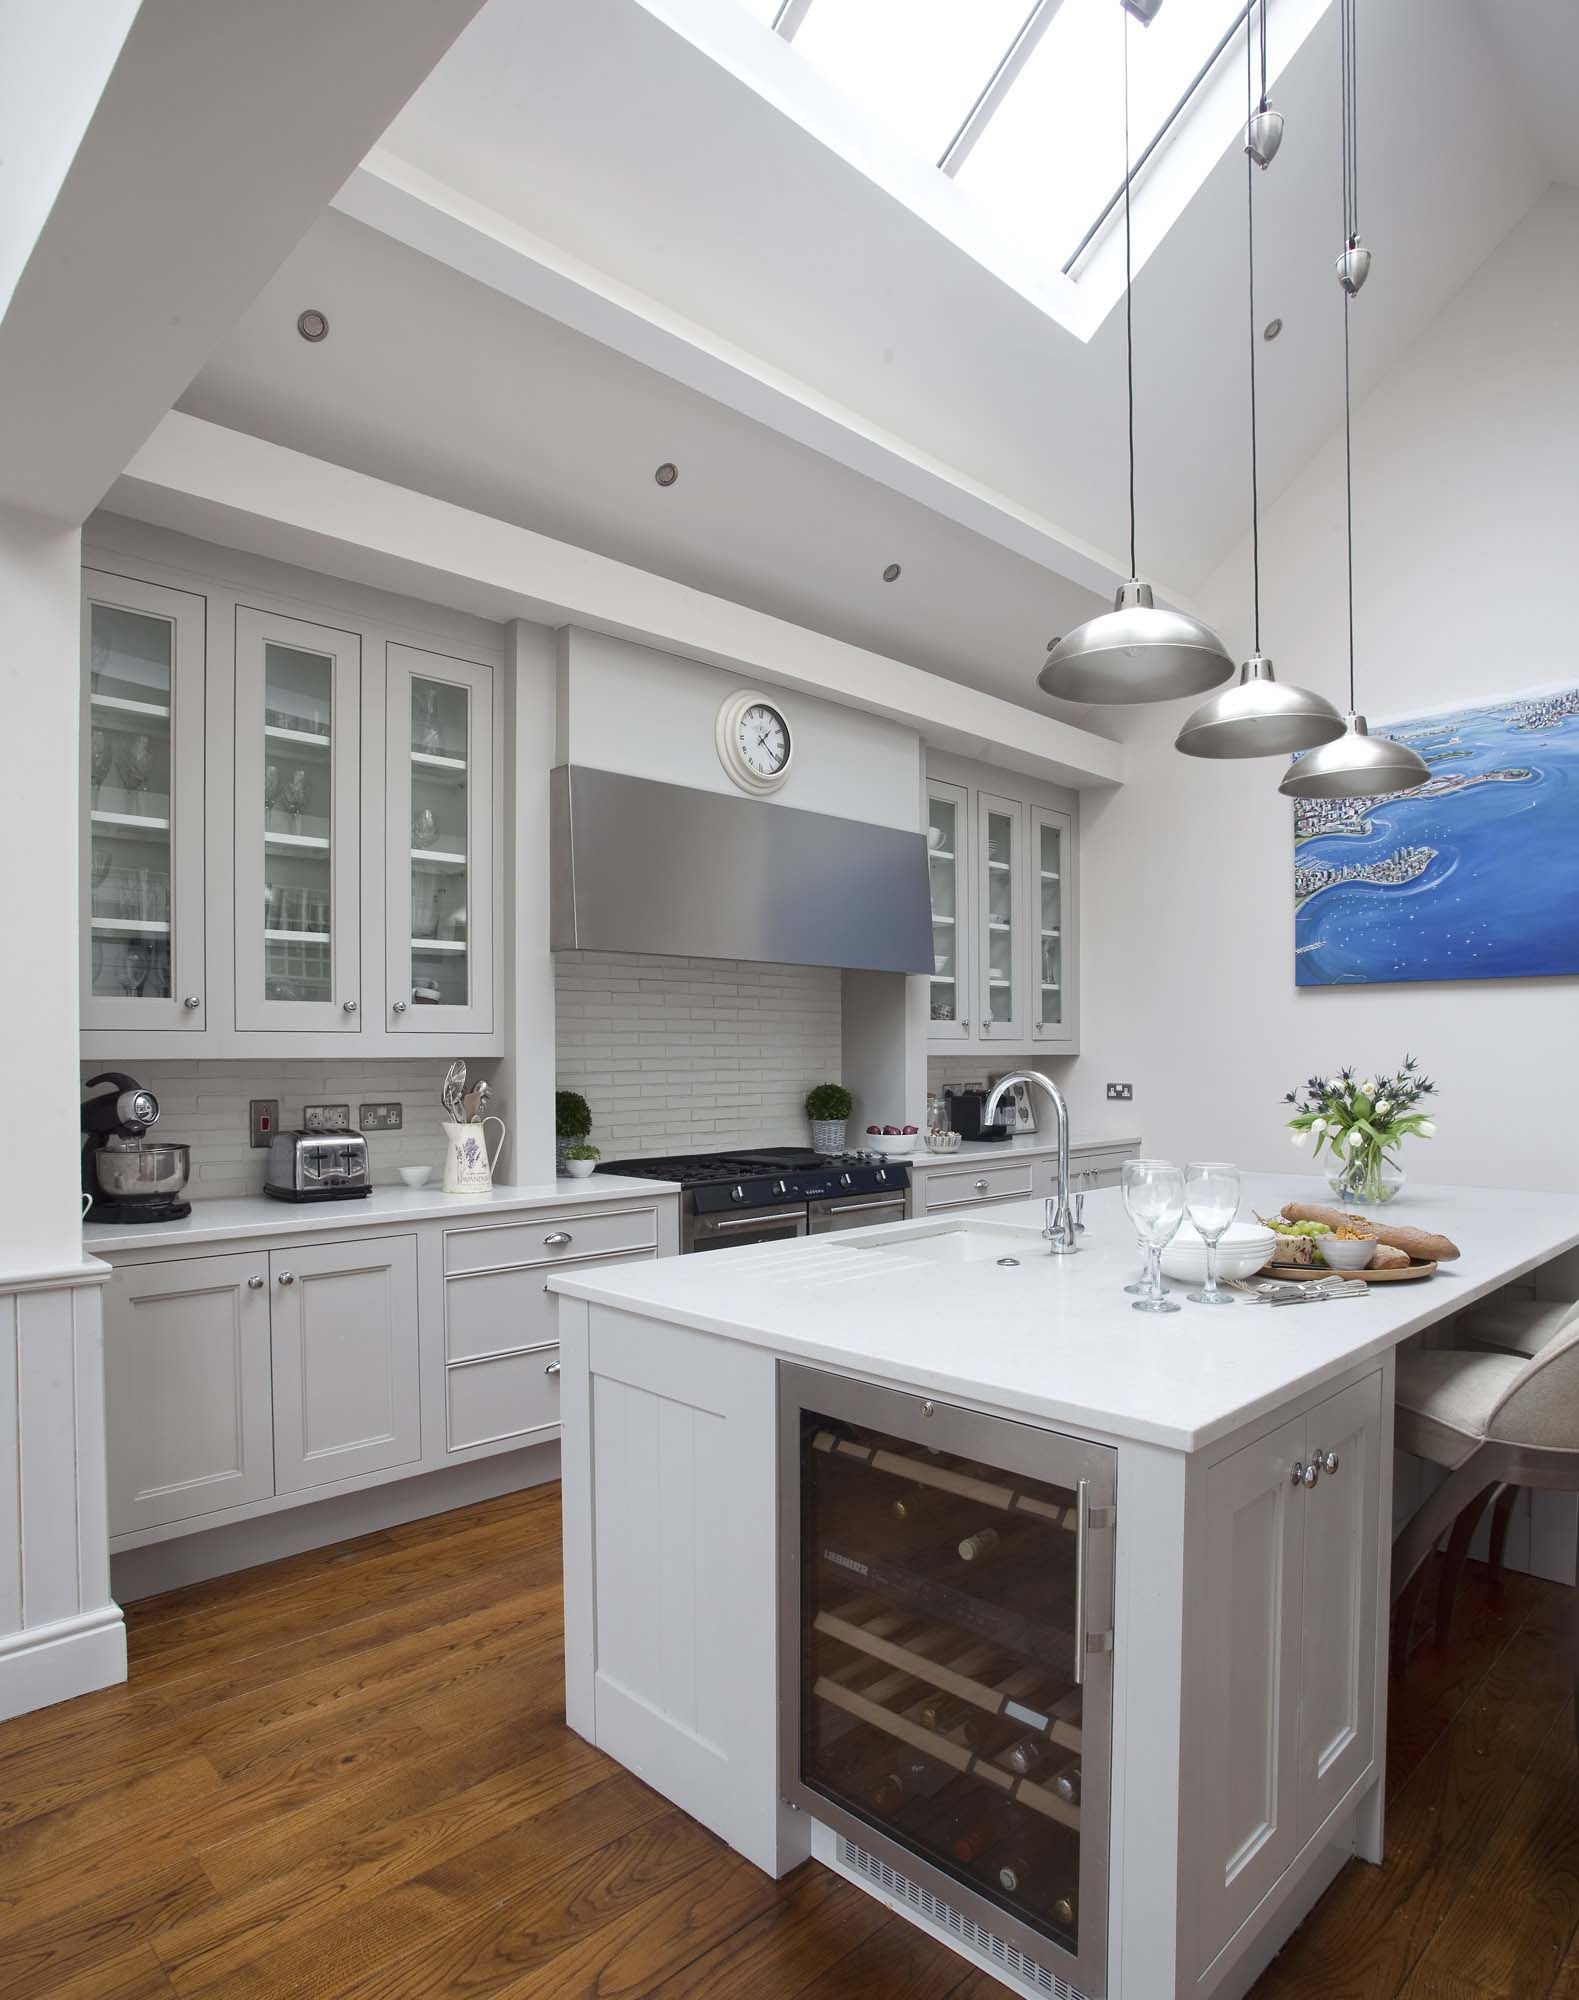 Superior This City Residence Features A New England Kitchen Design, Creating A  Homely Space For The